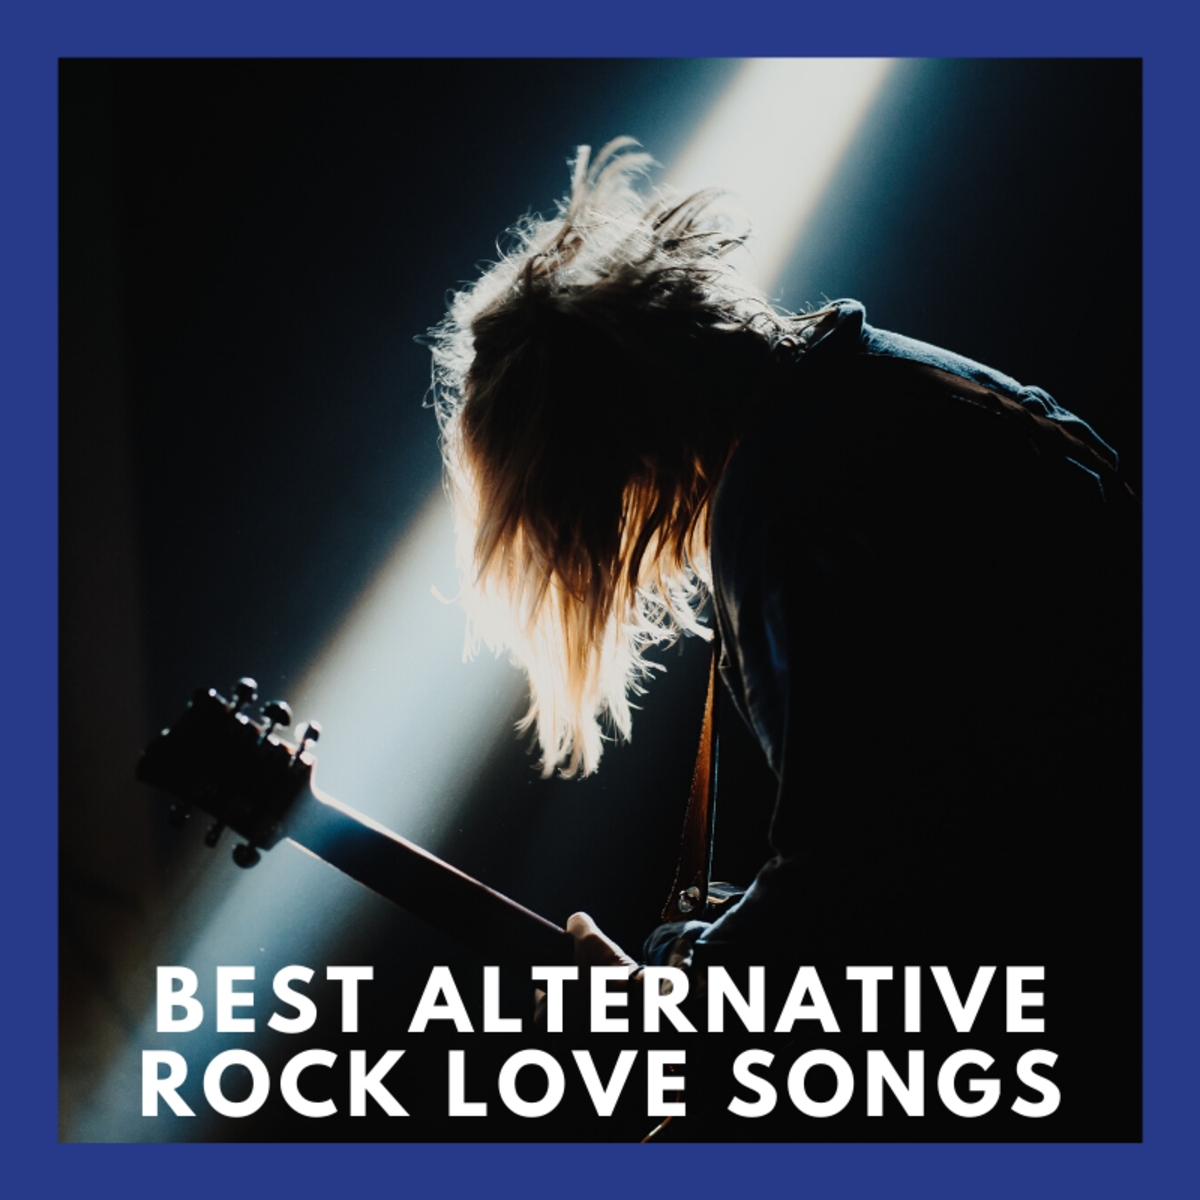 100 Best Alternative Rock Love Songs